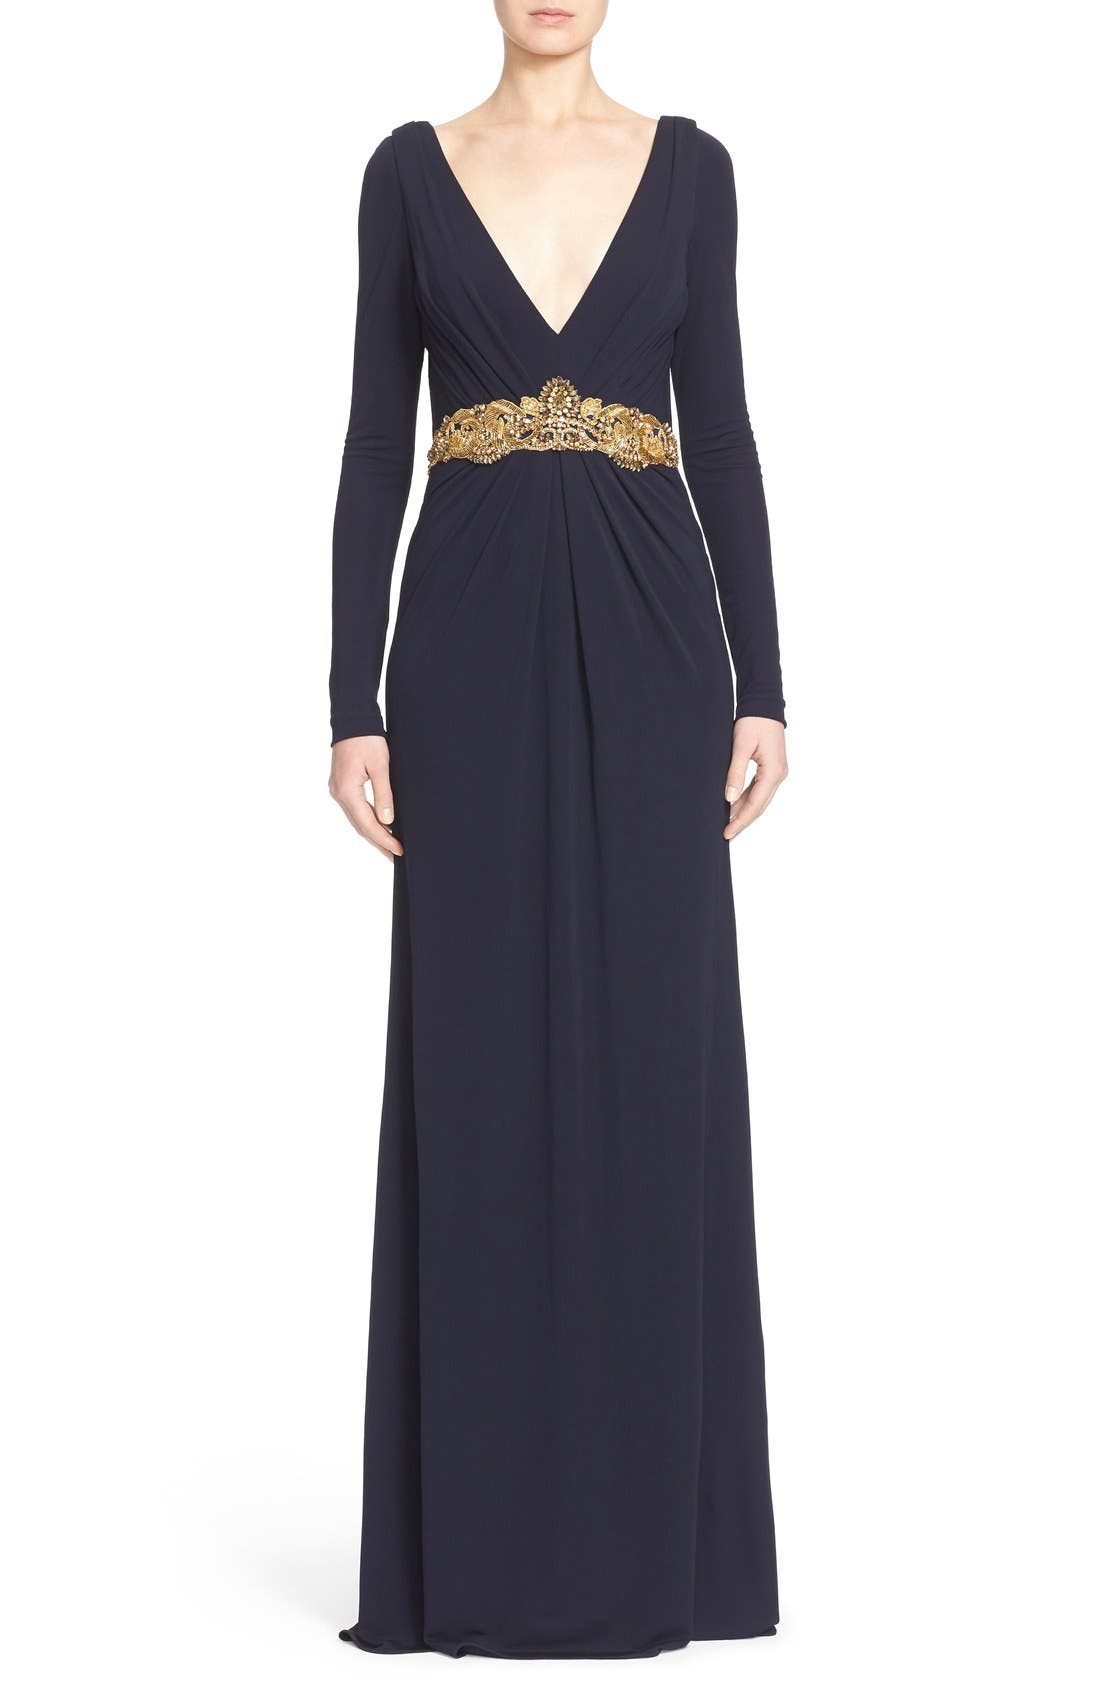 Badgley Mischka Couture Embellished Waist Plunging V-Neck Jersey Gown